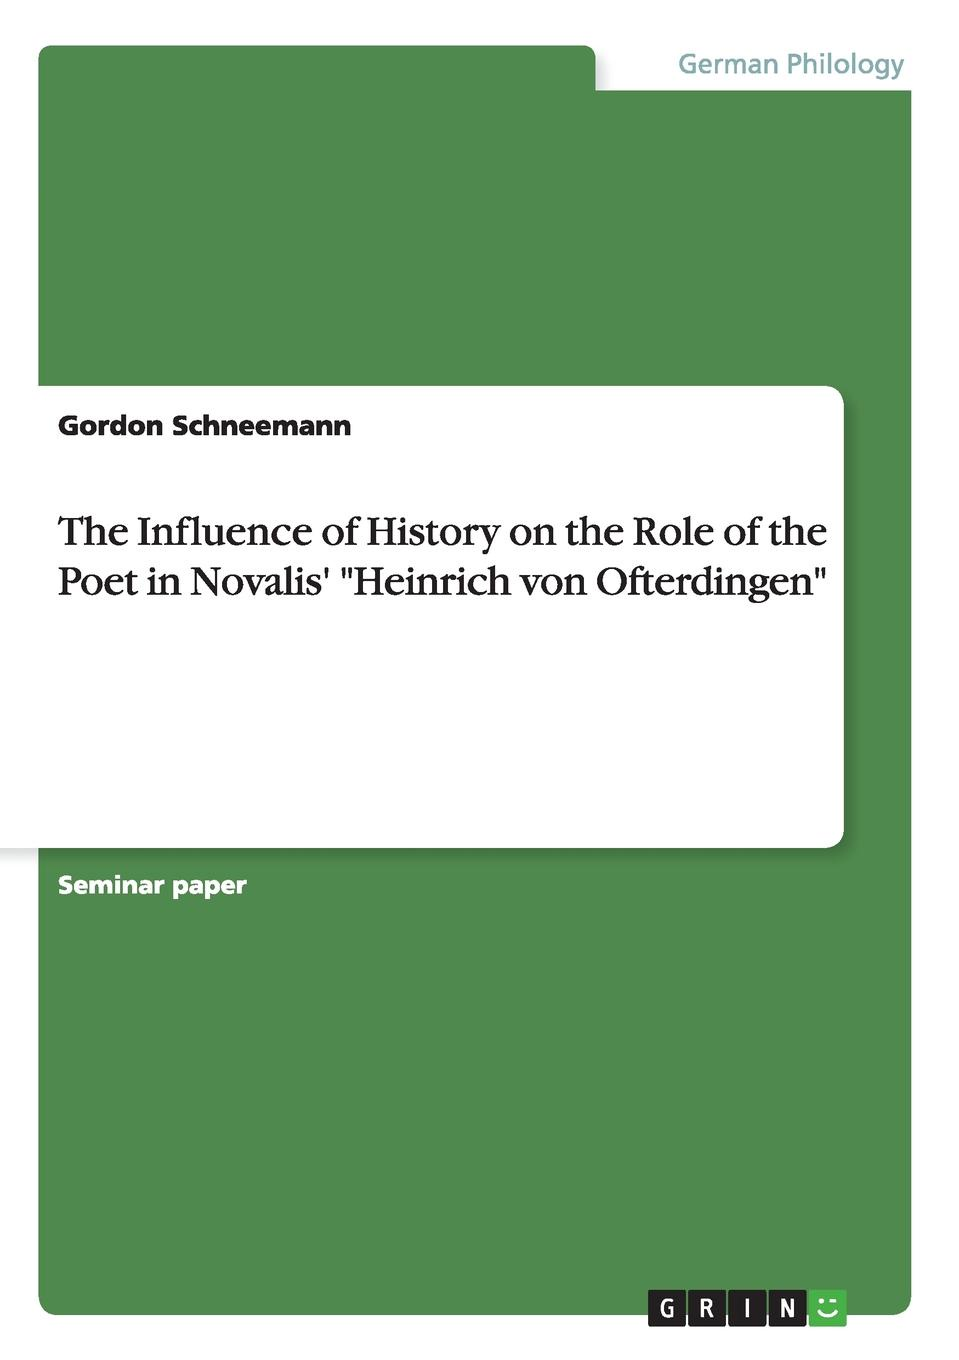 Gordon Schneemann The Influence of History on the Role of the Poet in Novalis. Heinrich von Ofterdingen sidney lanier shakespeare and his forerunners studies in elizabethan poetry and its development from early english